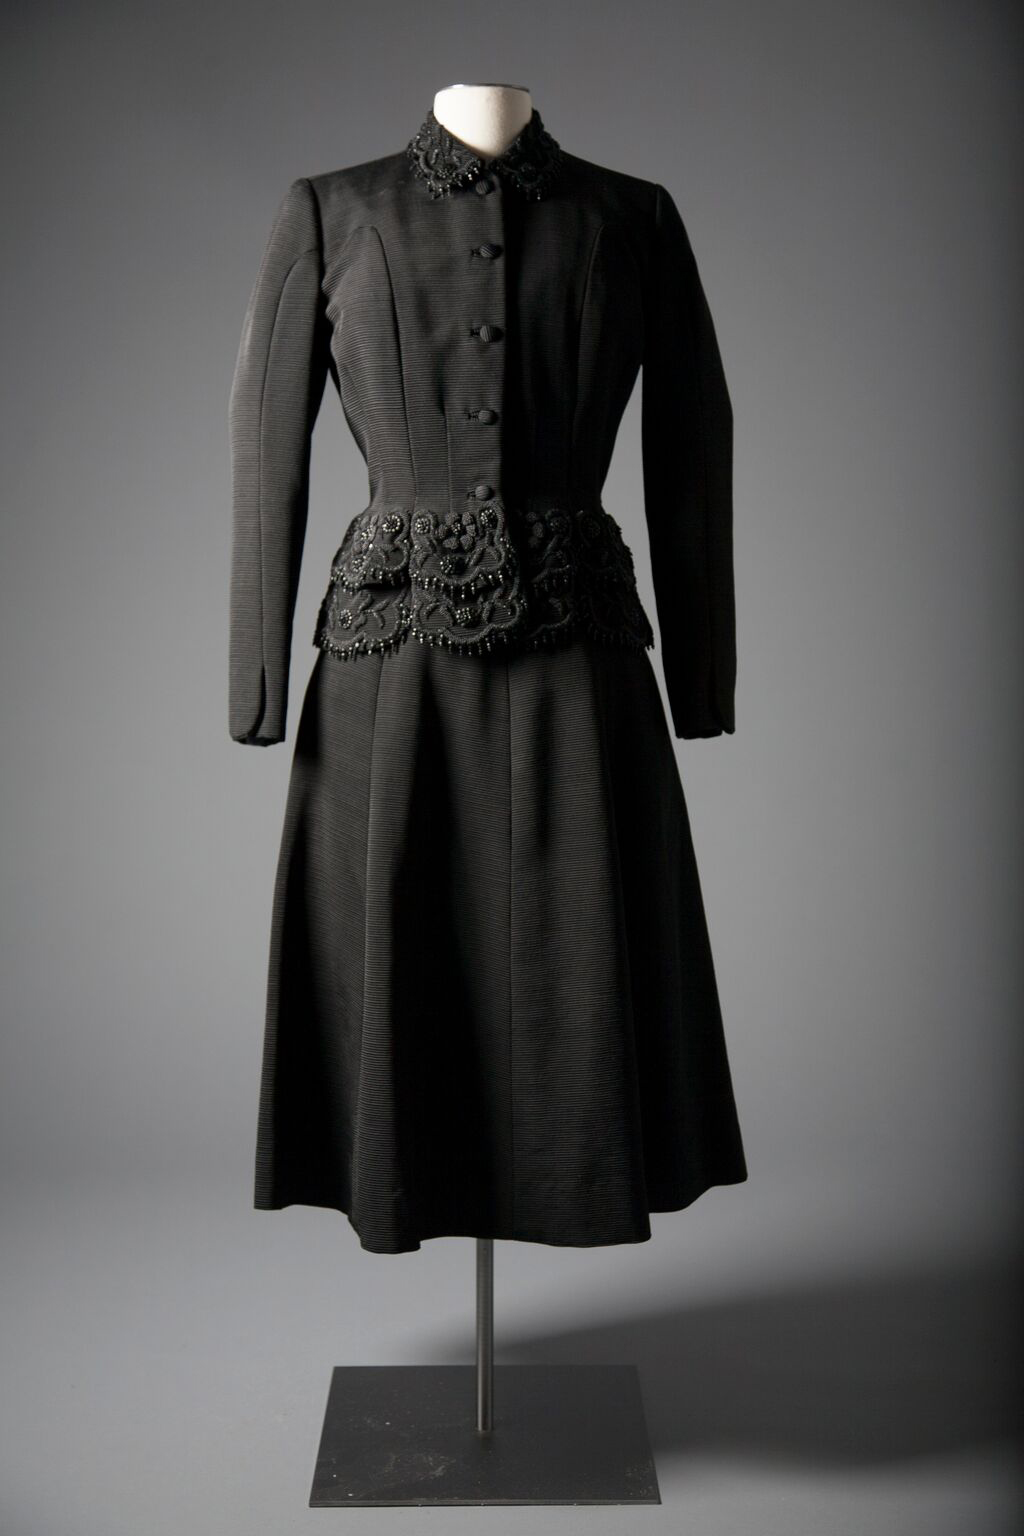 American beaded black cocktail suit, by Hattie Carnegie, fall/winter collection of 1949-50, a gift of Mrs. Walter Annenberg. Photo by Michael J. Shepherd.